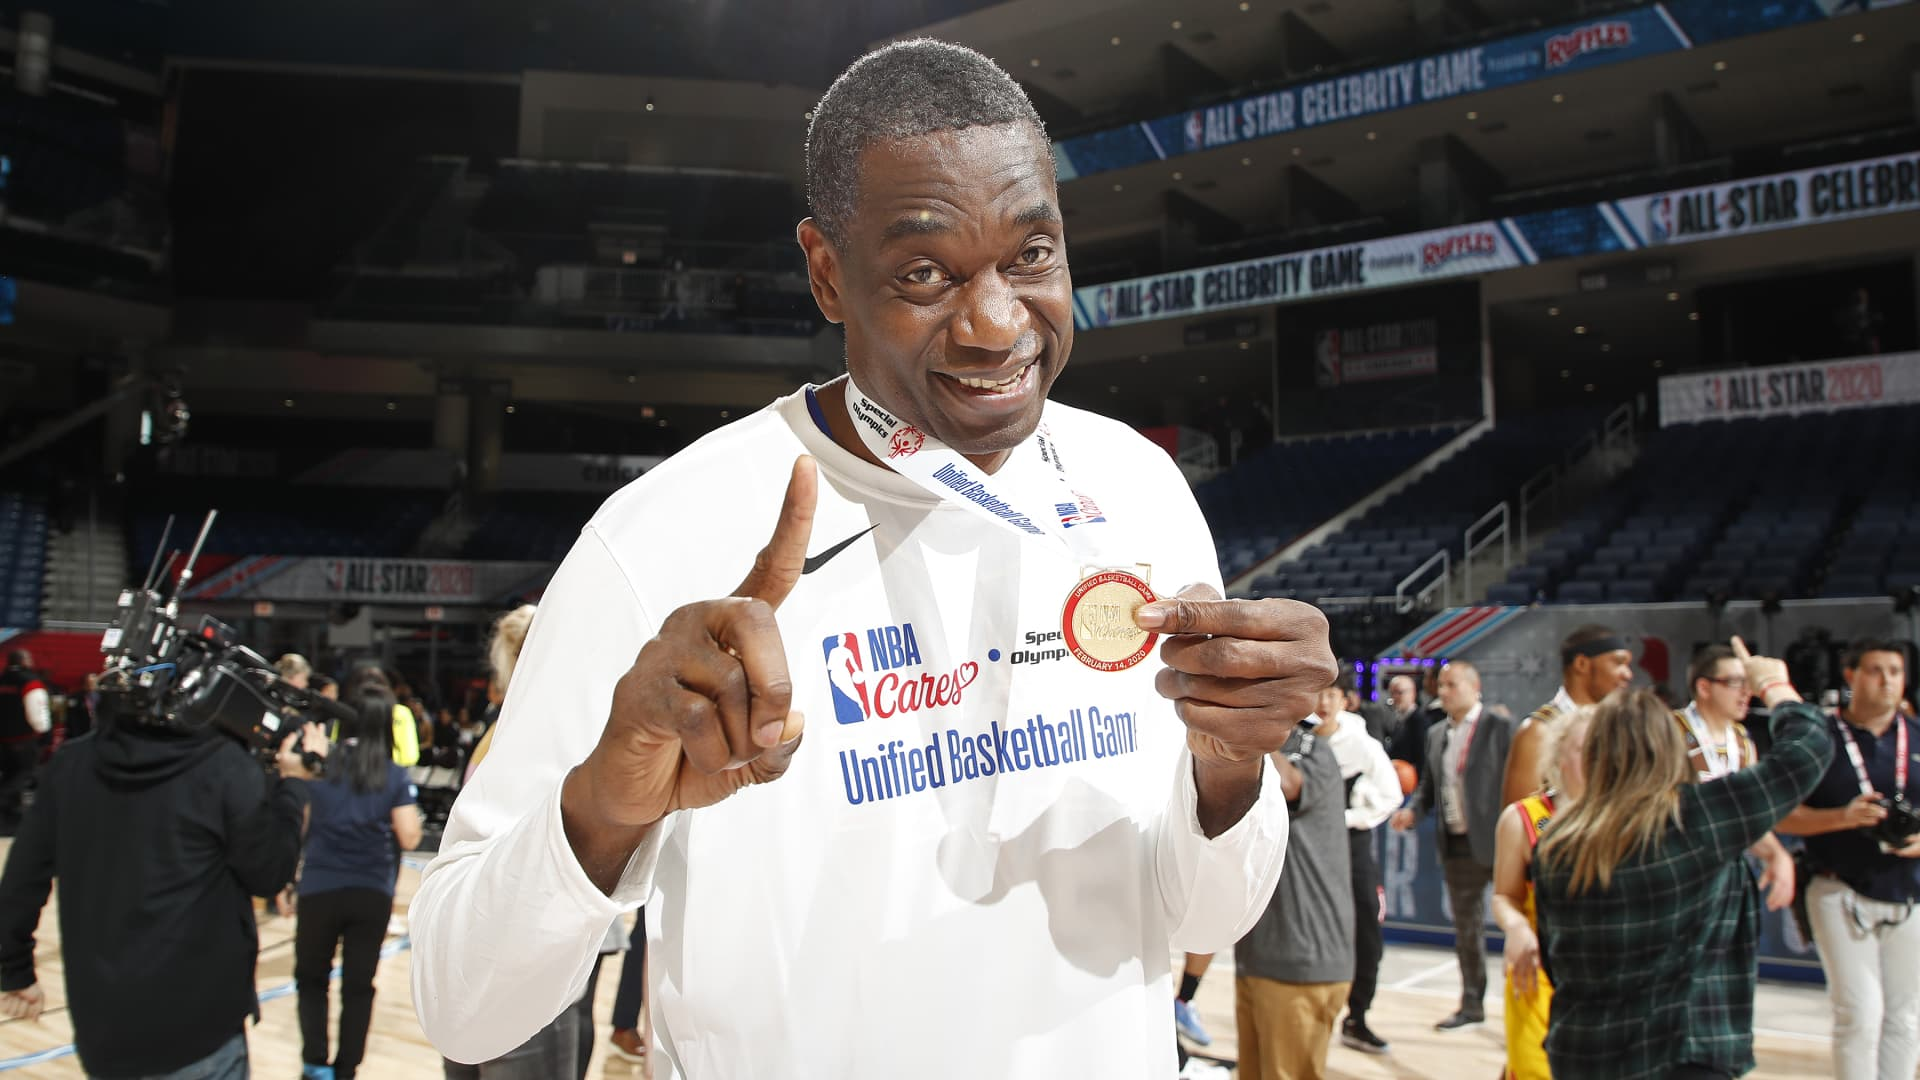 Dikembe Mutombo #55 of the Away Team poses for a photo during NBA Cares Special Olympics Unified Game as part of 2020 NBA All-Star Weekend on February 14, 2020 at Wintrust Arena in Chicago, Illinois.